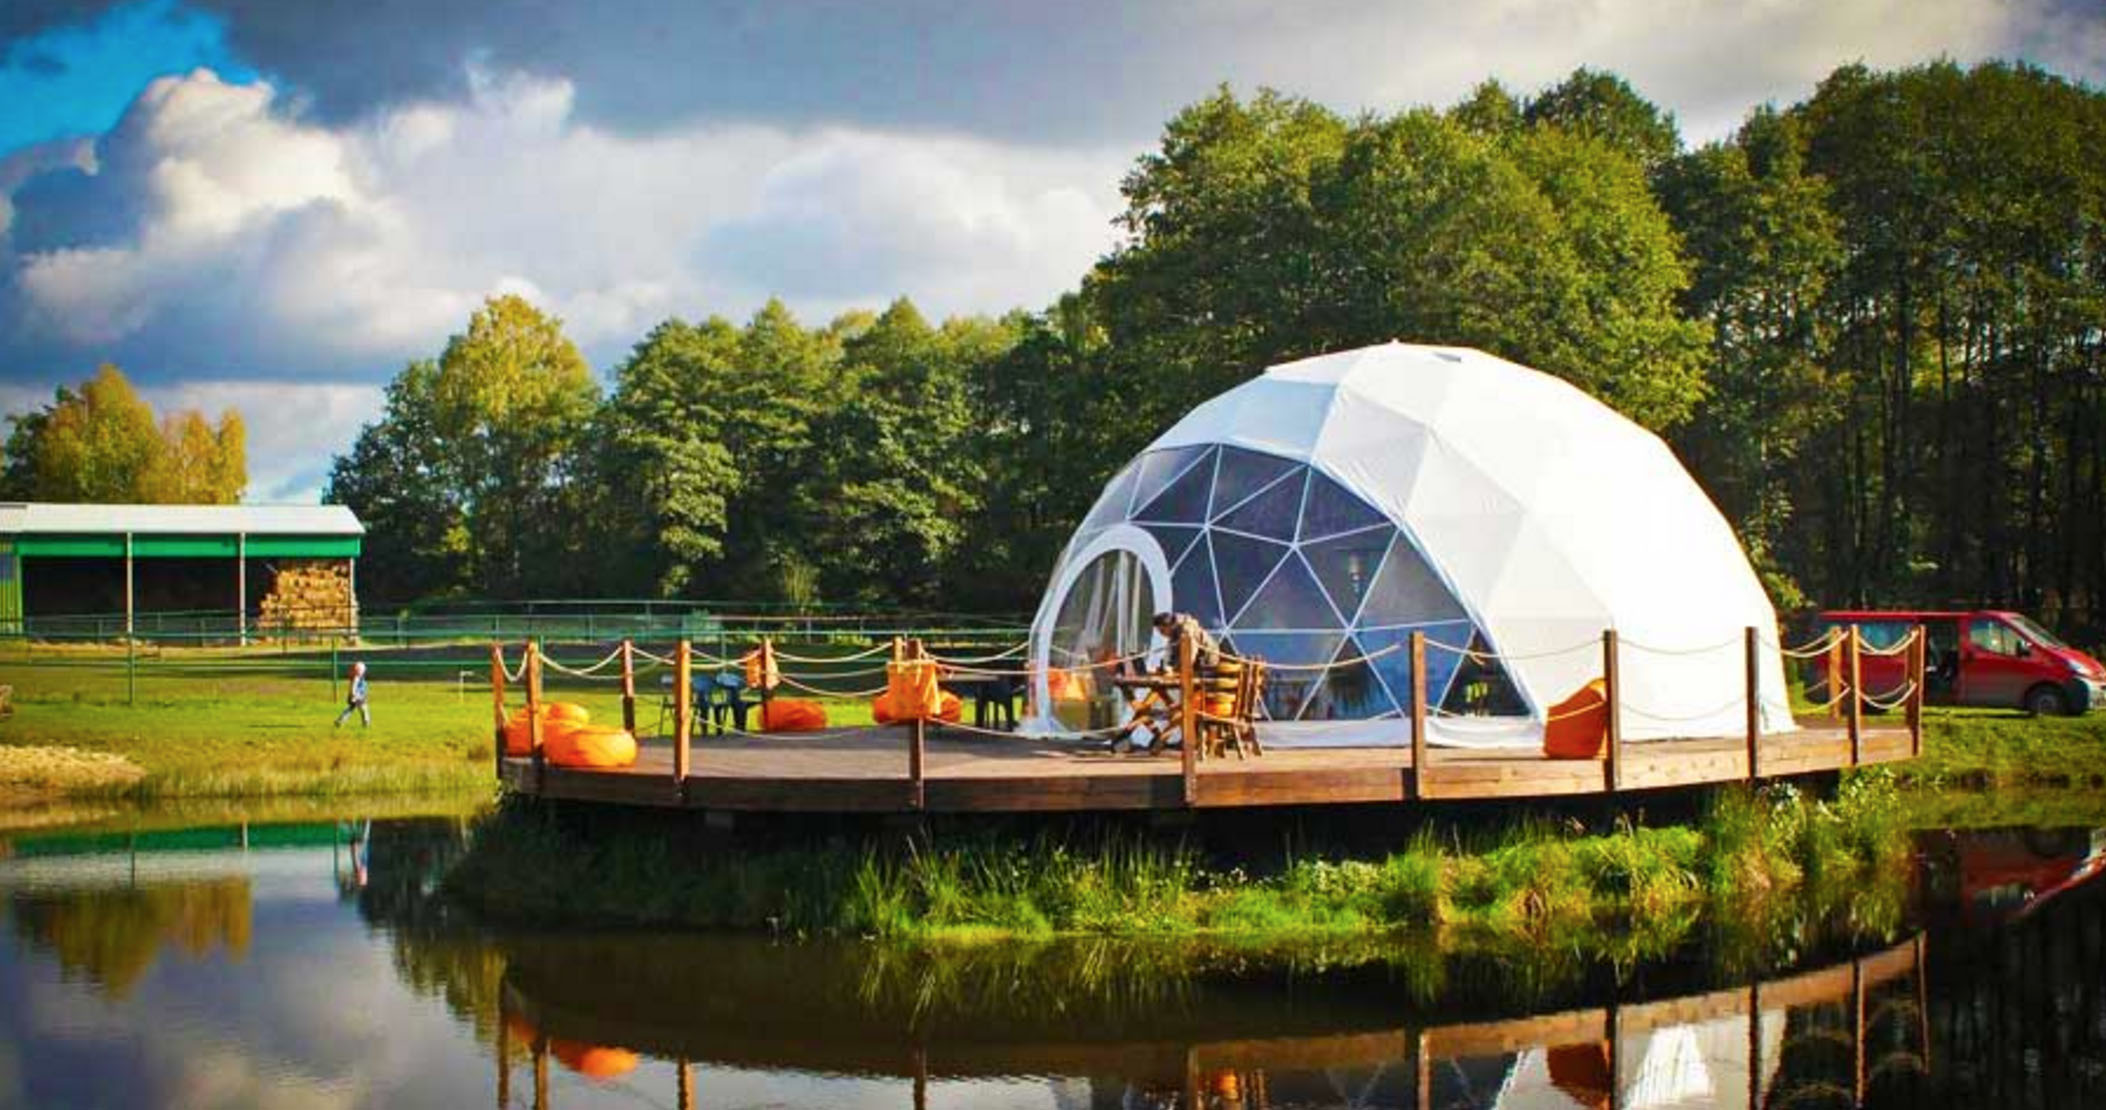 Create your own backyard geodesic dome with these super affordable DIY kits